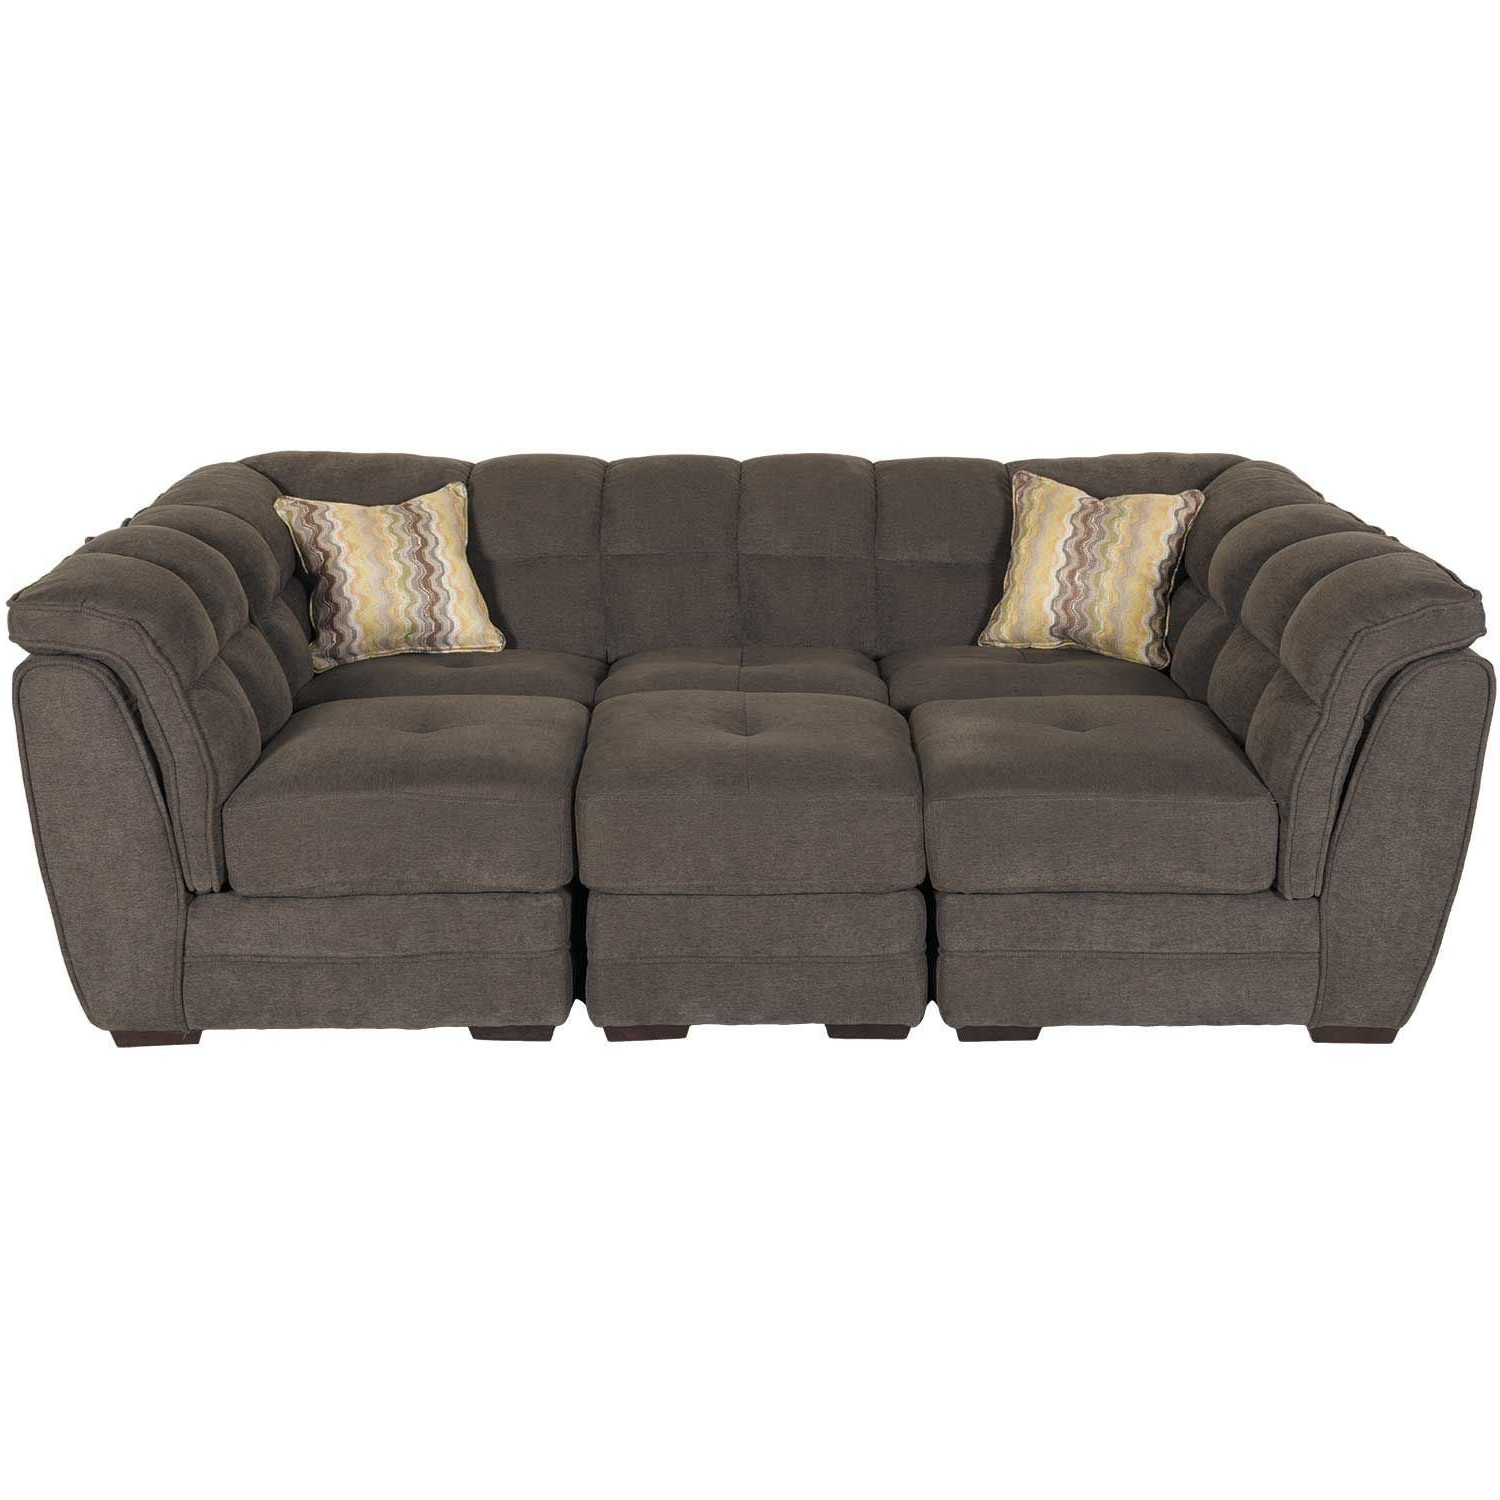 Trendy Taron 3 Piece Power Reclining Sectionals With Right Facing Console Loveseat In Big W Flip Out Sofa Bloom (Gallery 2 of 20)